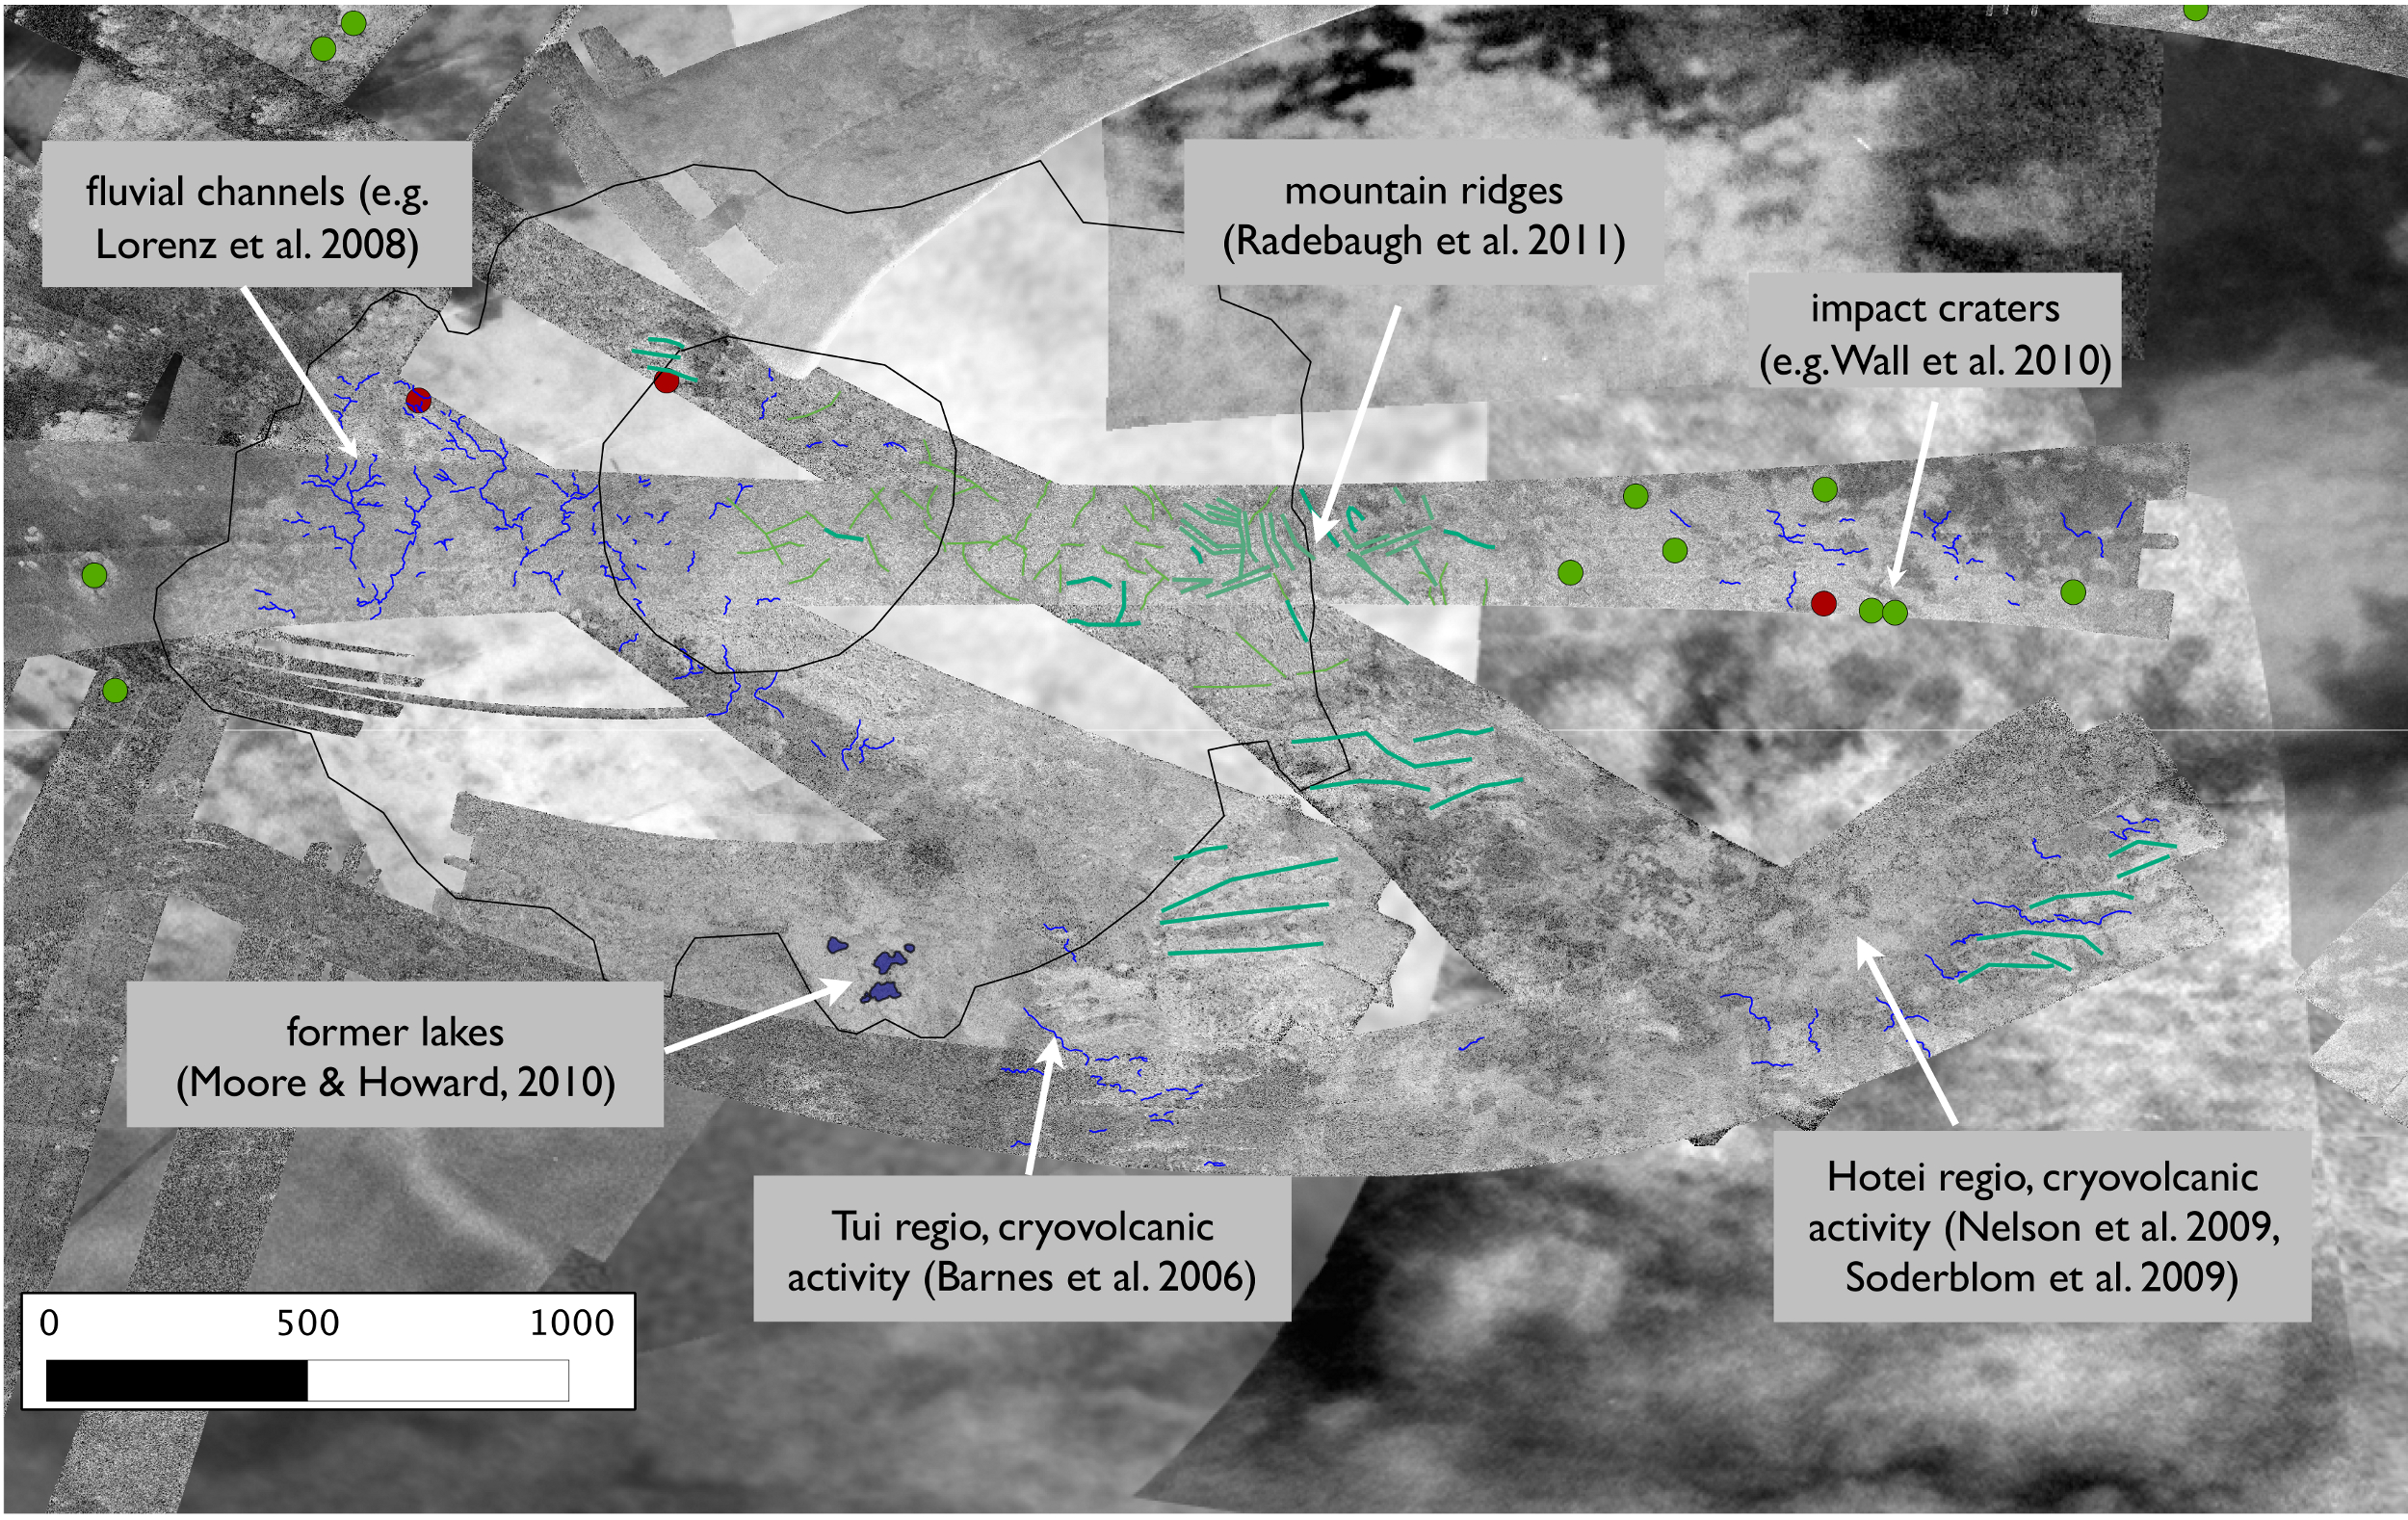 Geomorphologic map of Xanadu. Data: Cassini SAR data, source: (http://pds-imaging.jpl.nasa.gov/portal/cassini_mission.html). background: Cassini-ISS, source: (http://pds-imaging.jpl.nasa.gov/portal/cassini_mission.html). Inner and outer boundary of the Xanadu Circular Feature (XCF) are highlighted at Western Xanadu (black lines, according to Brown et al. (2011)). Green dots: impact craters listed in Wood et al. (2010) and Neish & Lorenz (2012), red dots: potential impact craters. Fluvial channels are delineated in blue. Dark green: lineations seen in mountain ranges, from Radebaugh et al. (2011). Light green: lineations in mountain ranges (Langhans et al. 2013).